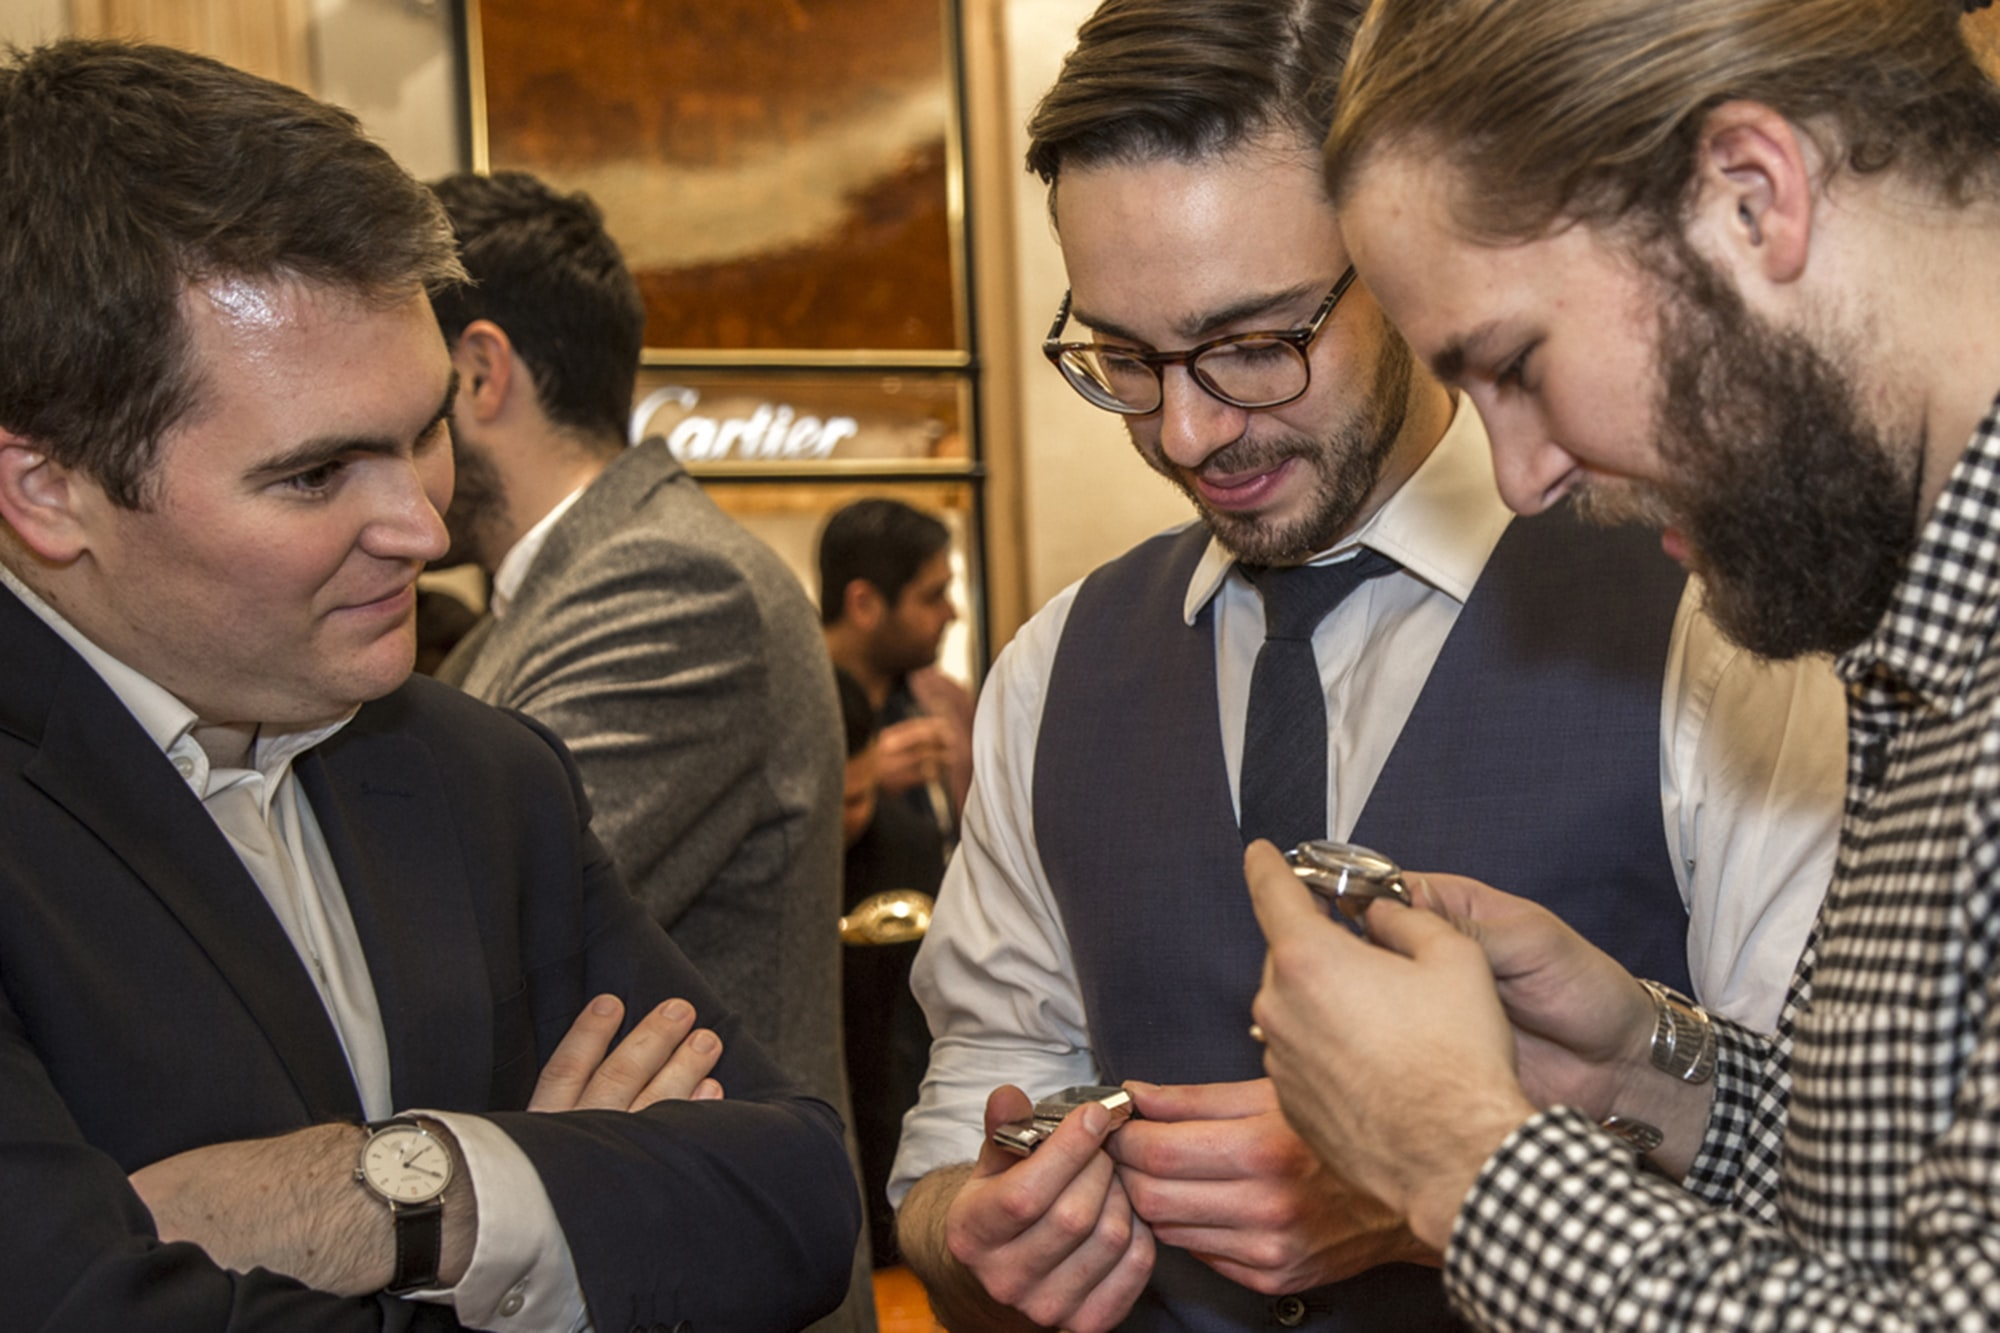 Photo Report: HODINKEE Hosts A Collector Get-Together At The Wempe Boutique In London Photo Report: HODINKEE Hosts A Collector Get-Together At The Wempe Boutique In London 7